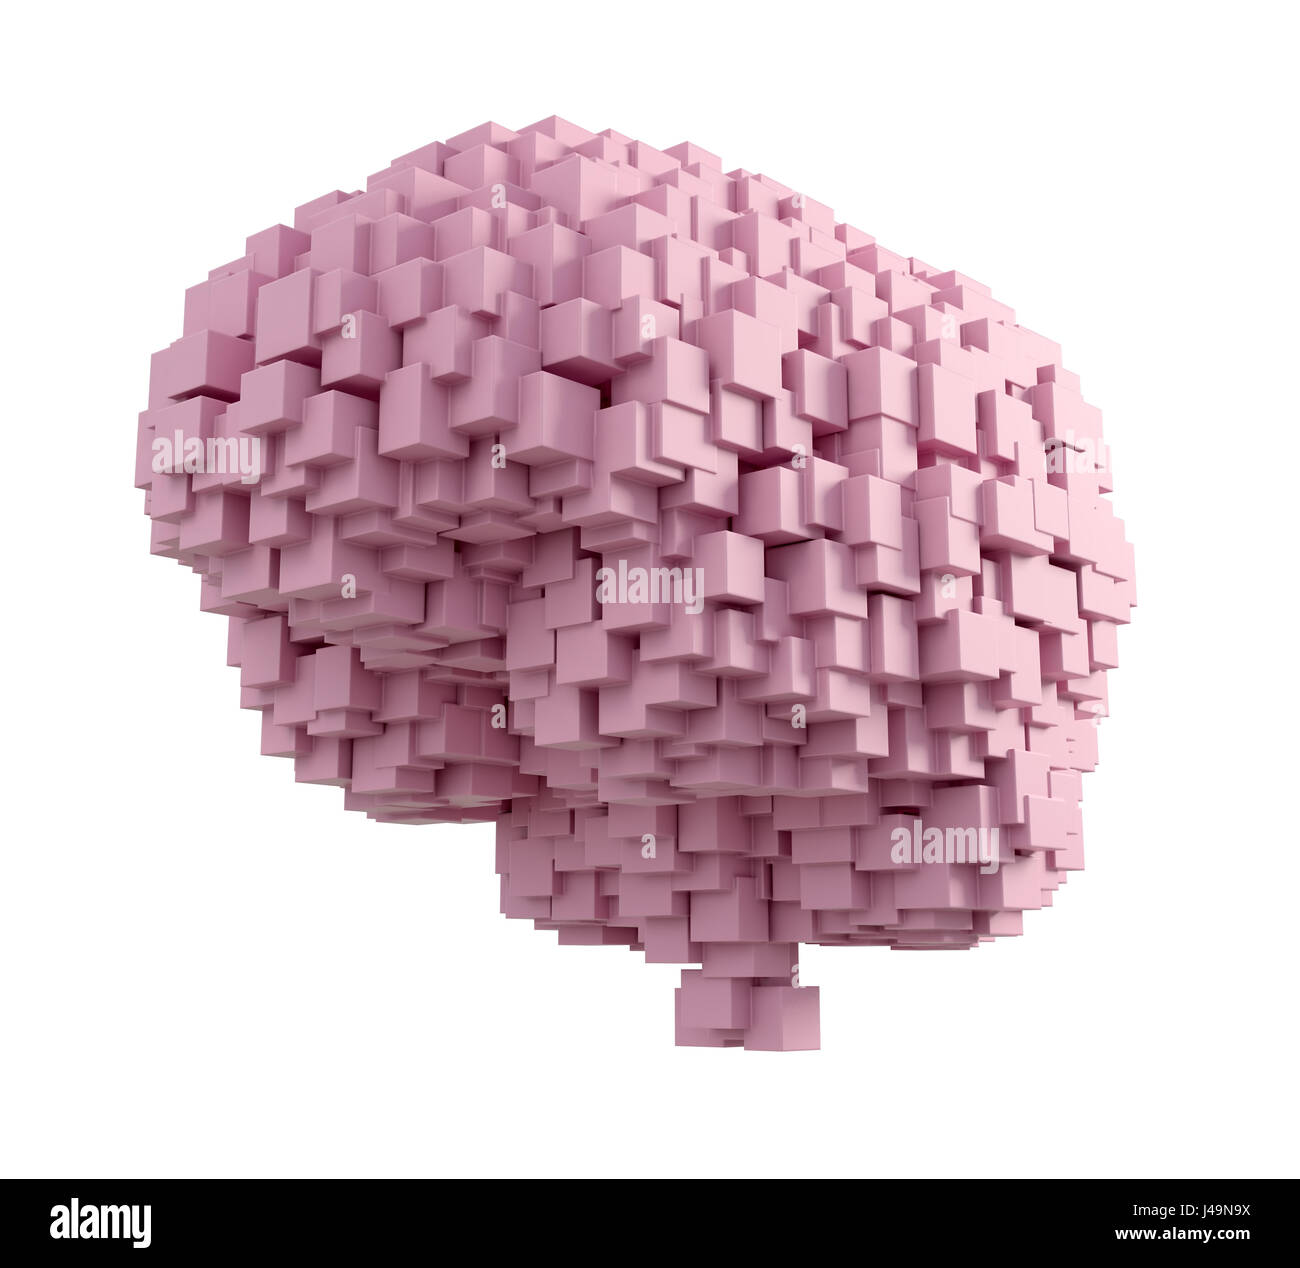 Human brain - intelligence and memory concept 3D illustration - Stock Image